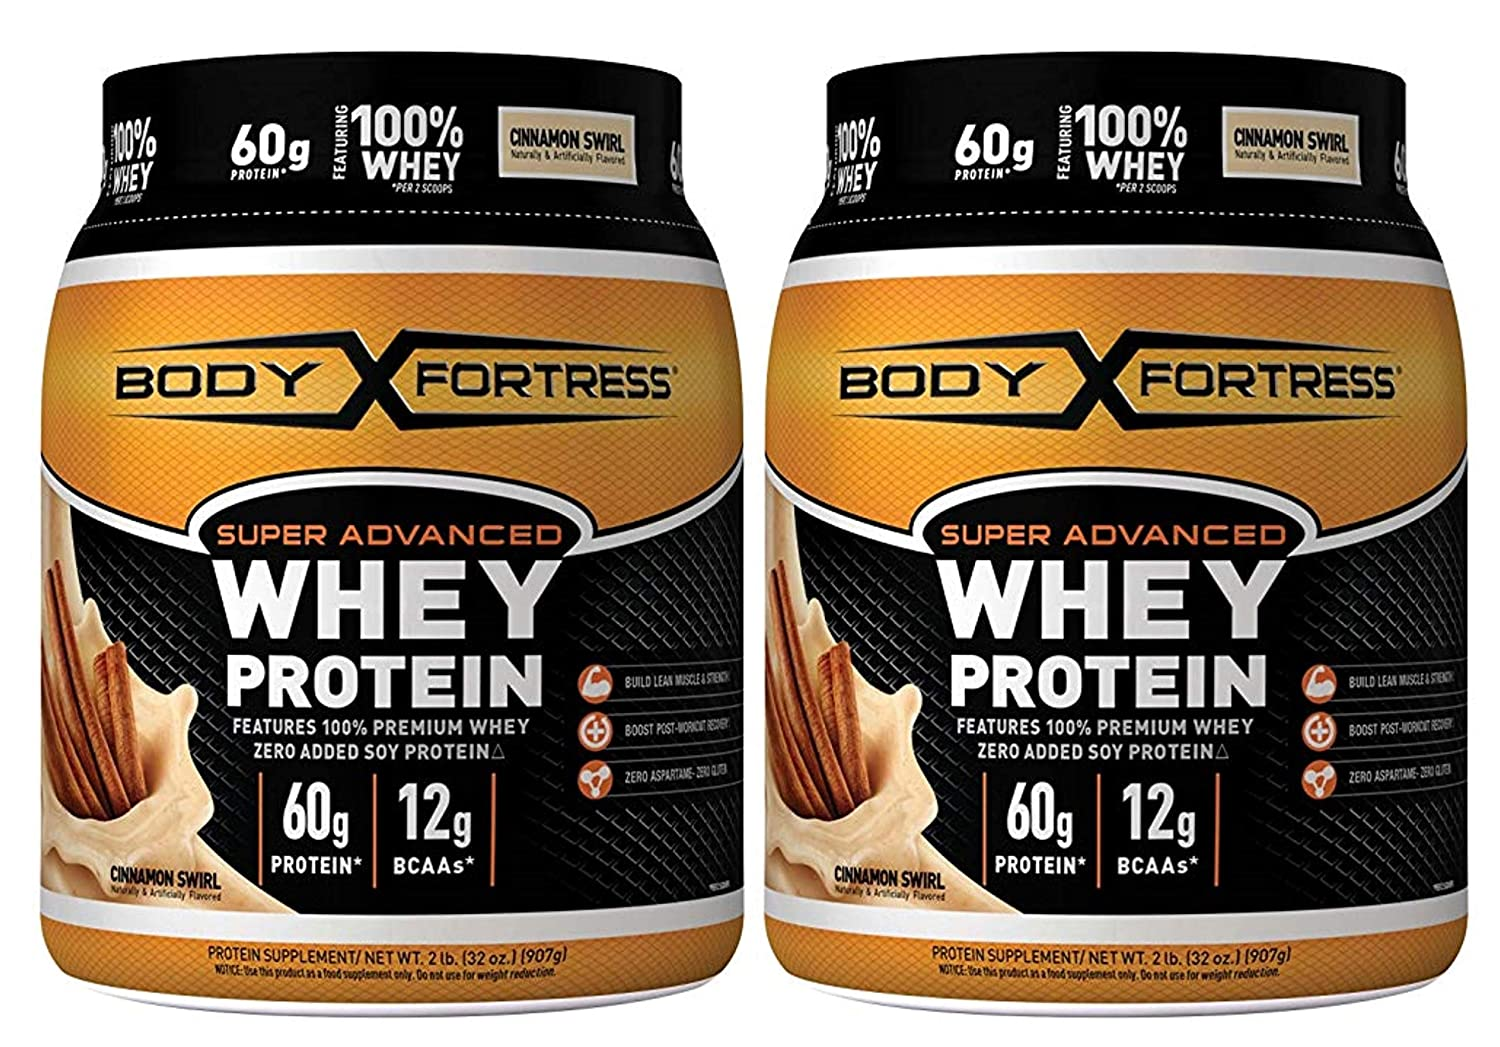 Body Fortress Super Advanced Whey Protein Powder, Gluten Free, Cinnamon Swirl, 2 lbs 2 Pack